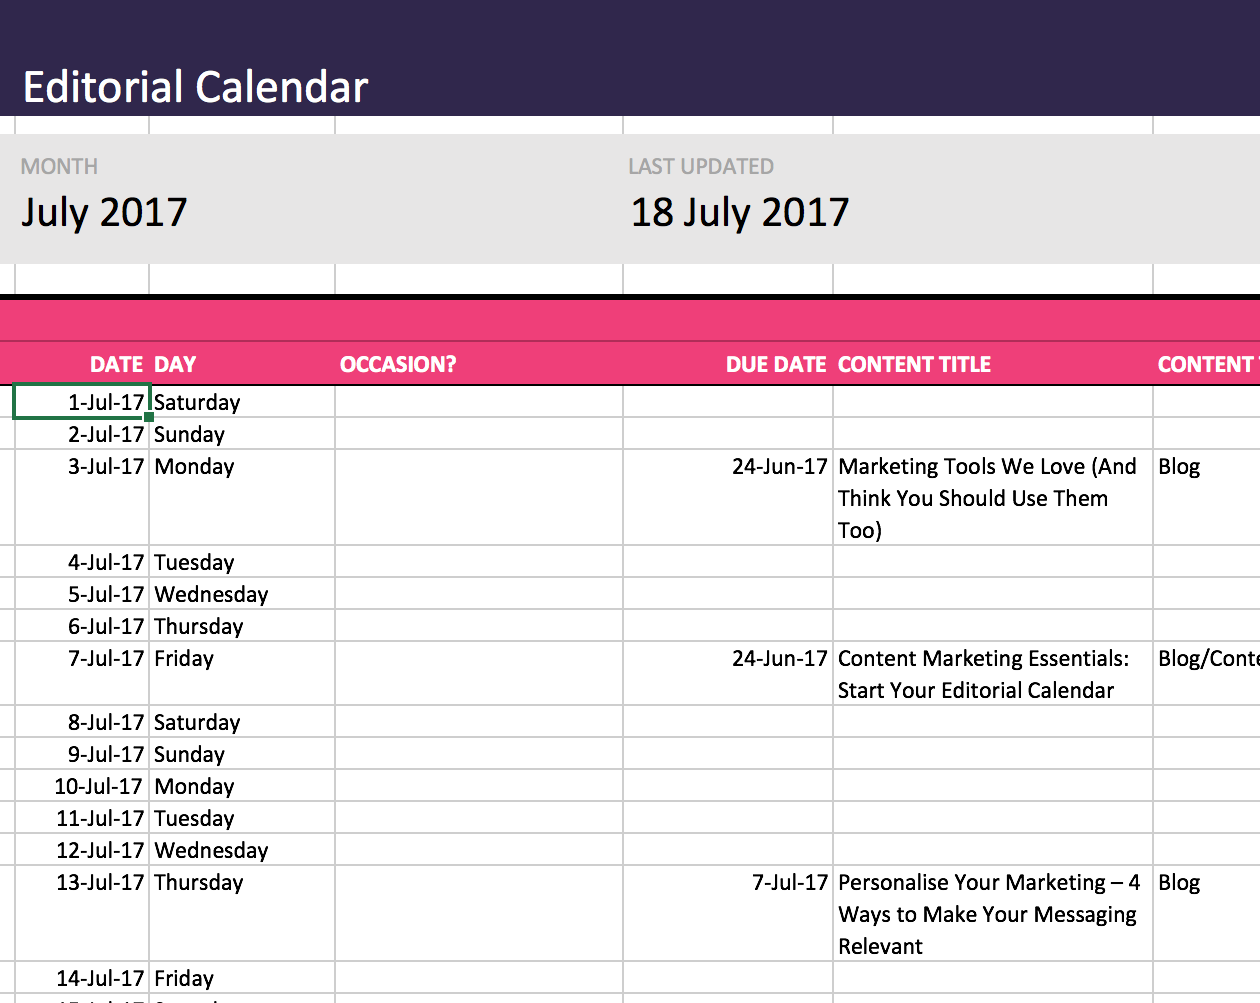 Content Marketing Essentials Start Your Editorial Calendar Free - Sample marketing calendar